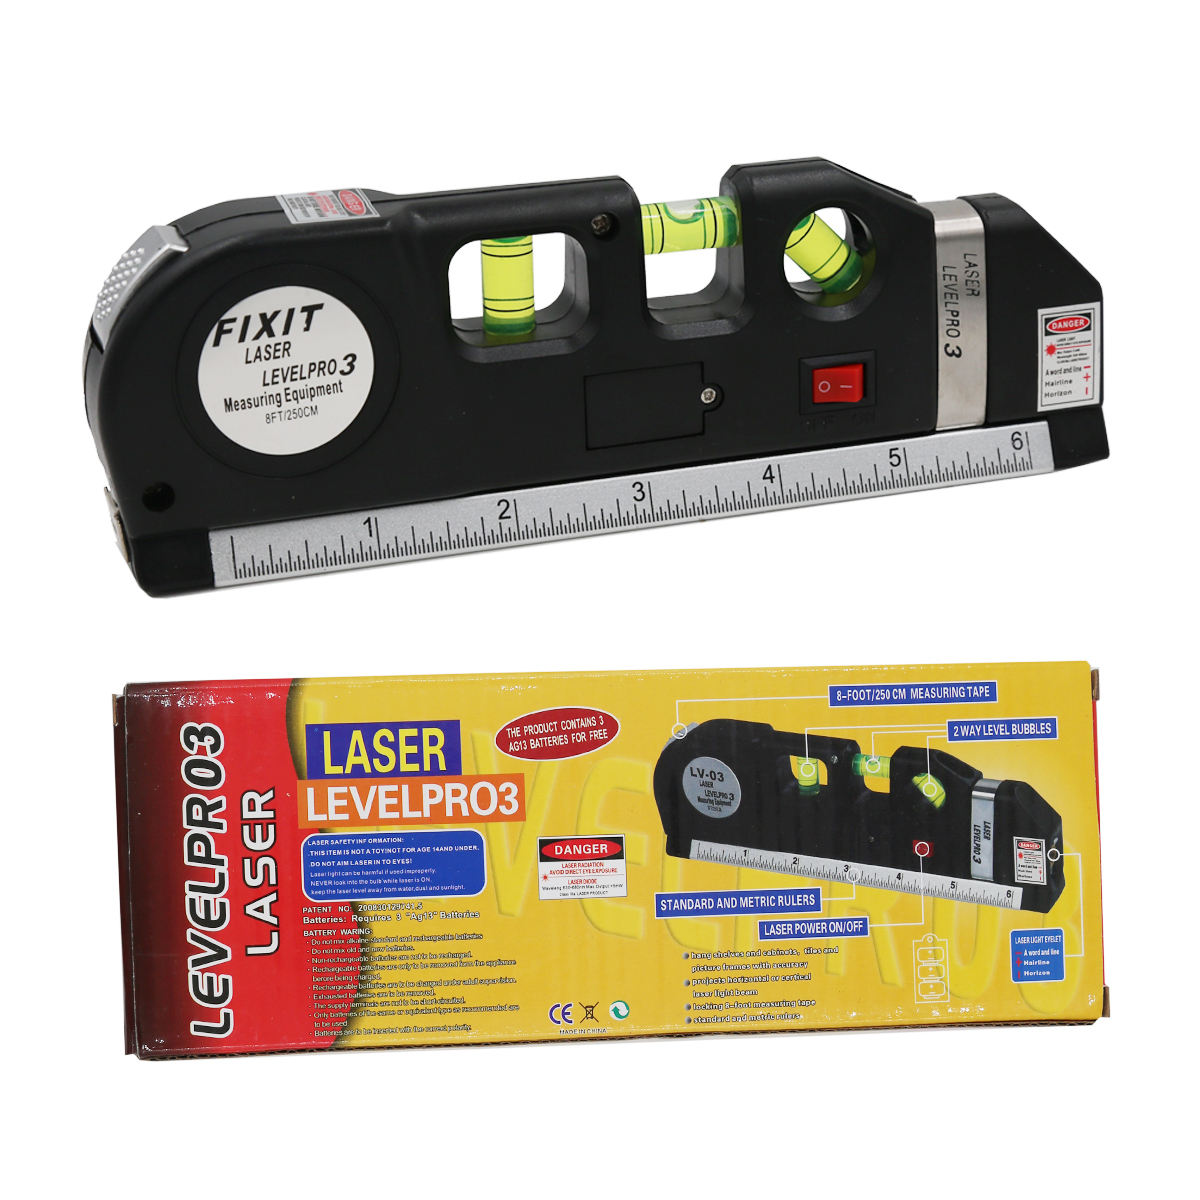 Laser Level Scale Horizon Vertical Measure 8FT Aligner Standard and Metric Ruler Multipurpose Measure Level Laser Meter Black